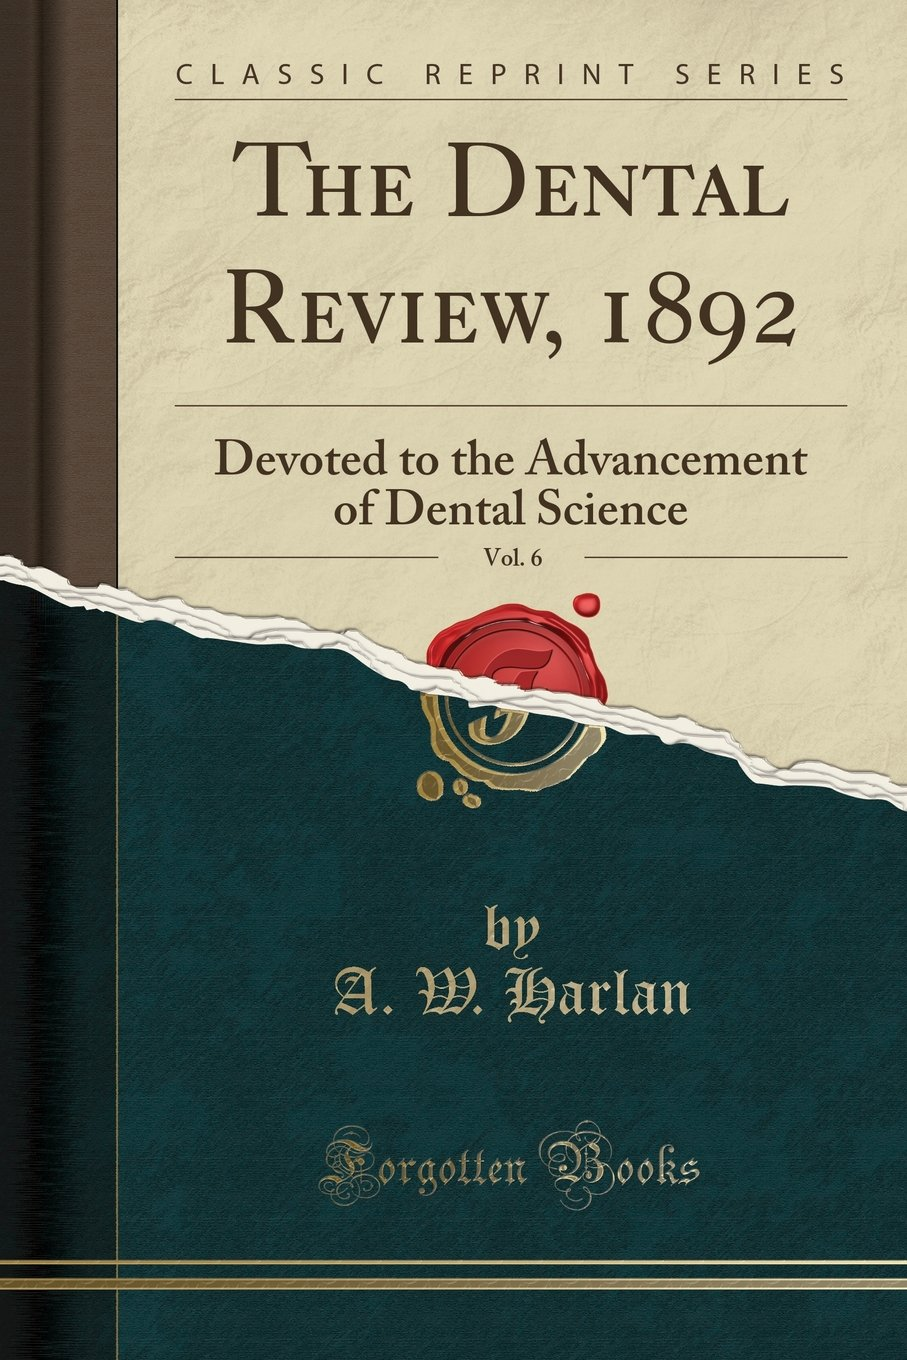 The Dental Review, 1892, Vol. 6: Devoted to the Advancement of Dental Science (Classic Reprint) PDF